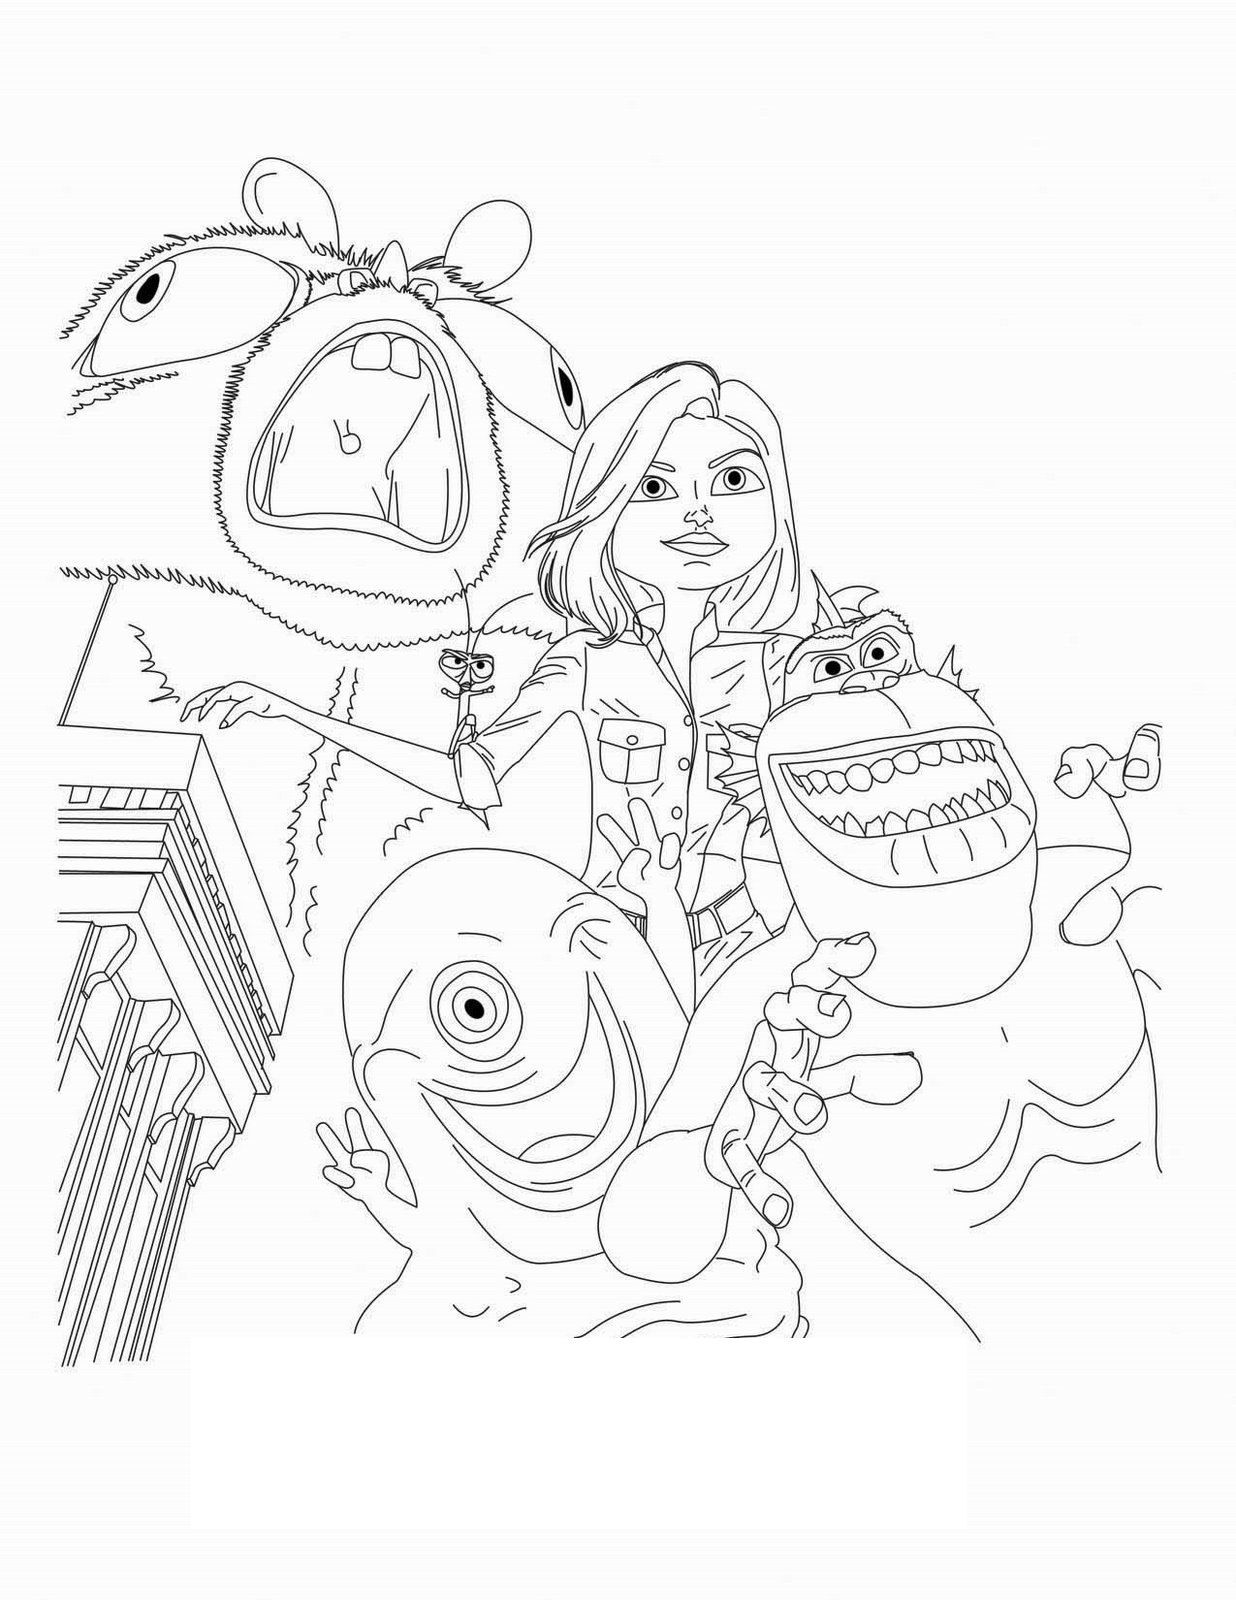 Give a like for Monsters vs Aliens. Fun coloring sheets